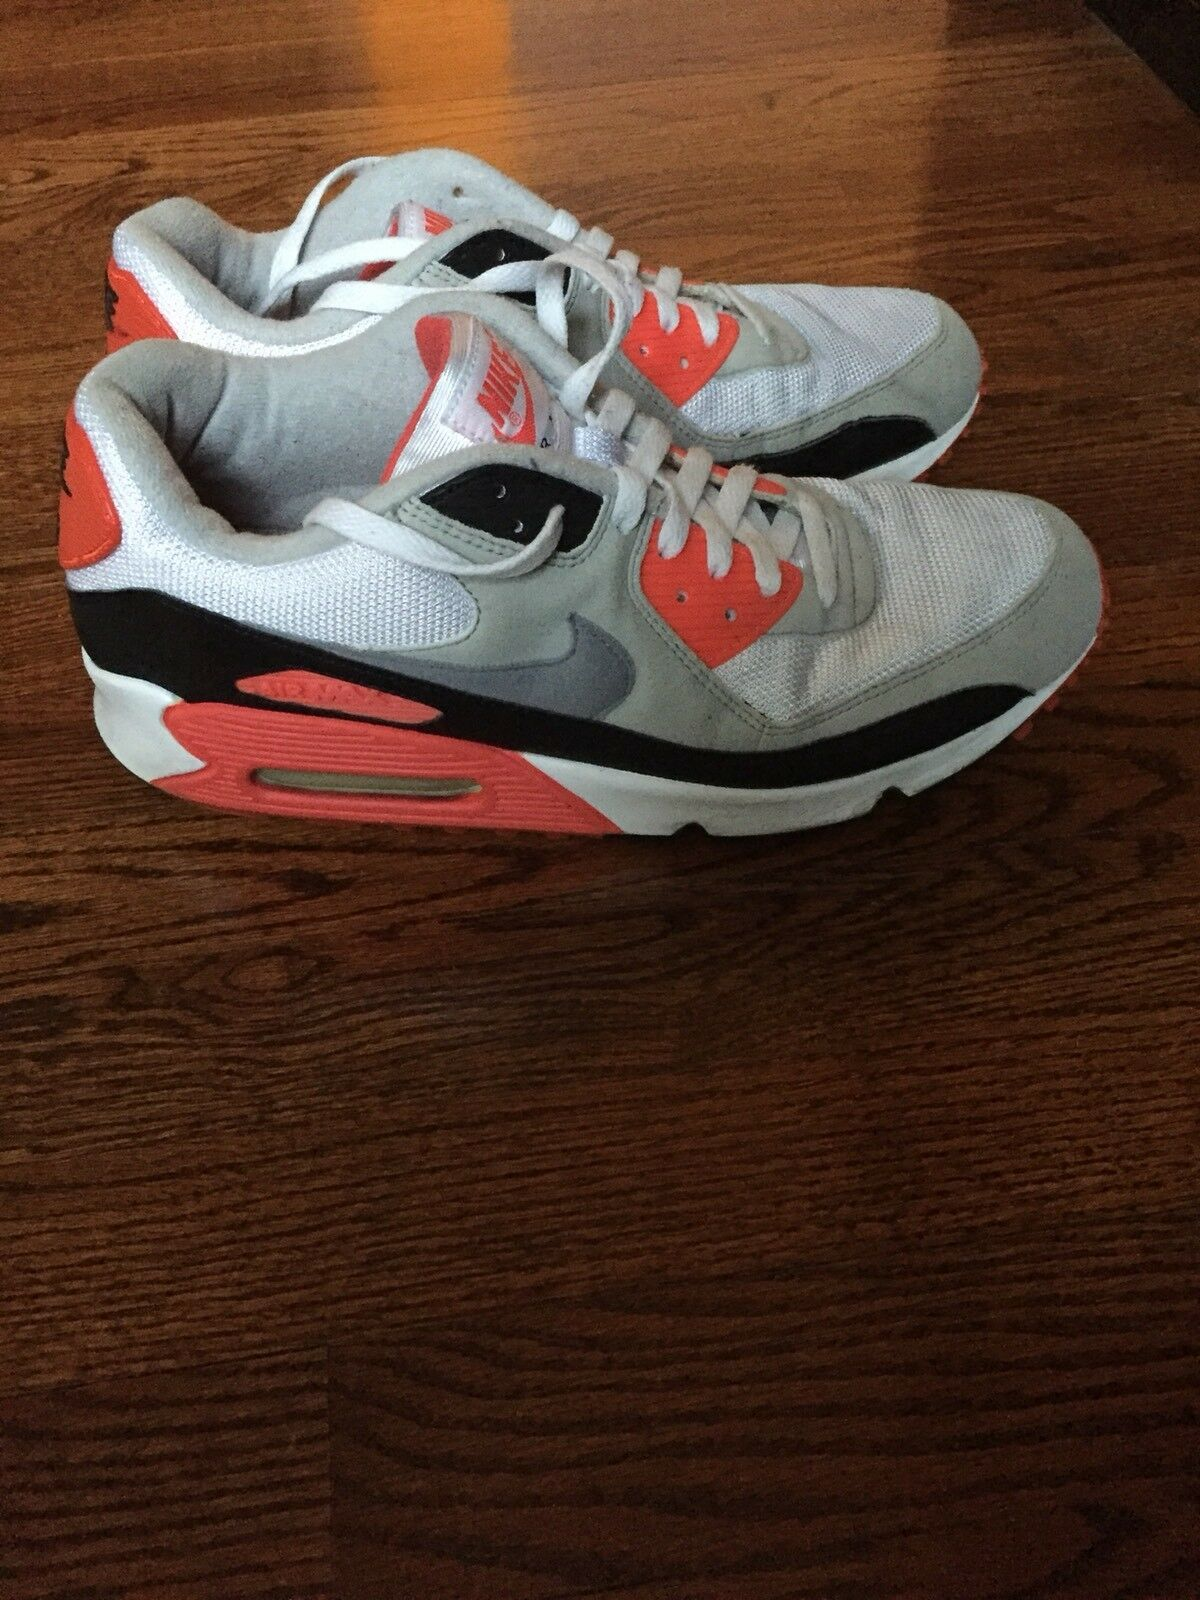 Nike air max 90 Classic HOA White Cement Grey Infrared Black 313096 101 Size 11